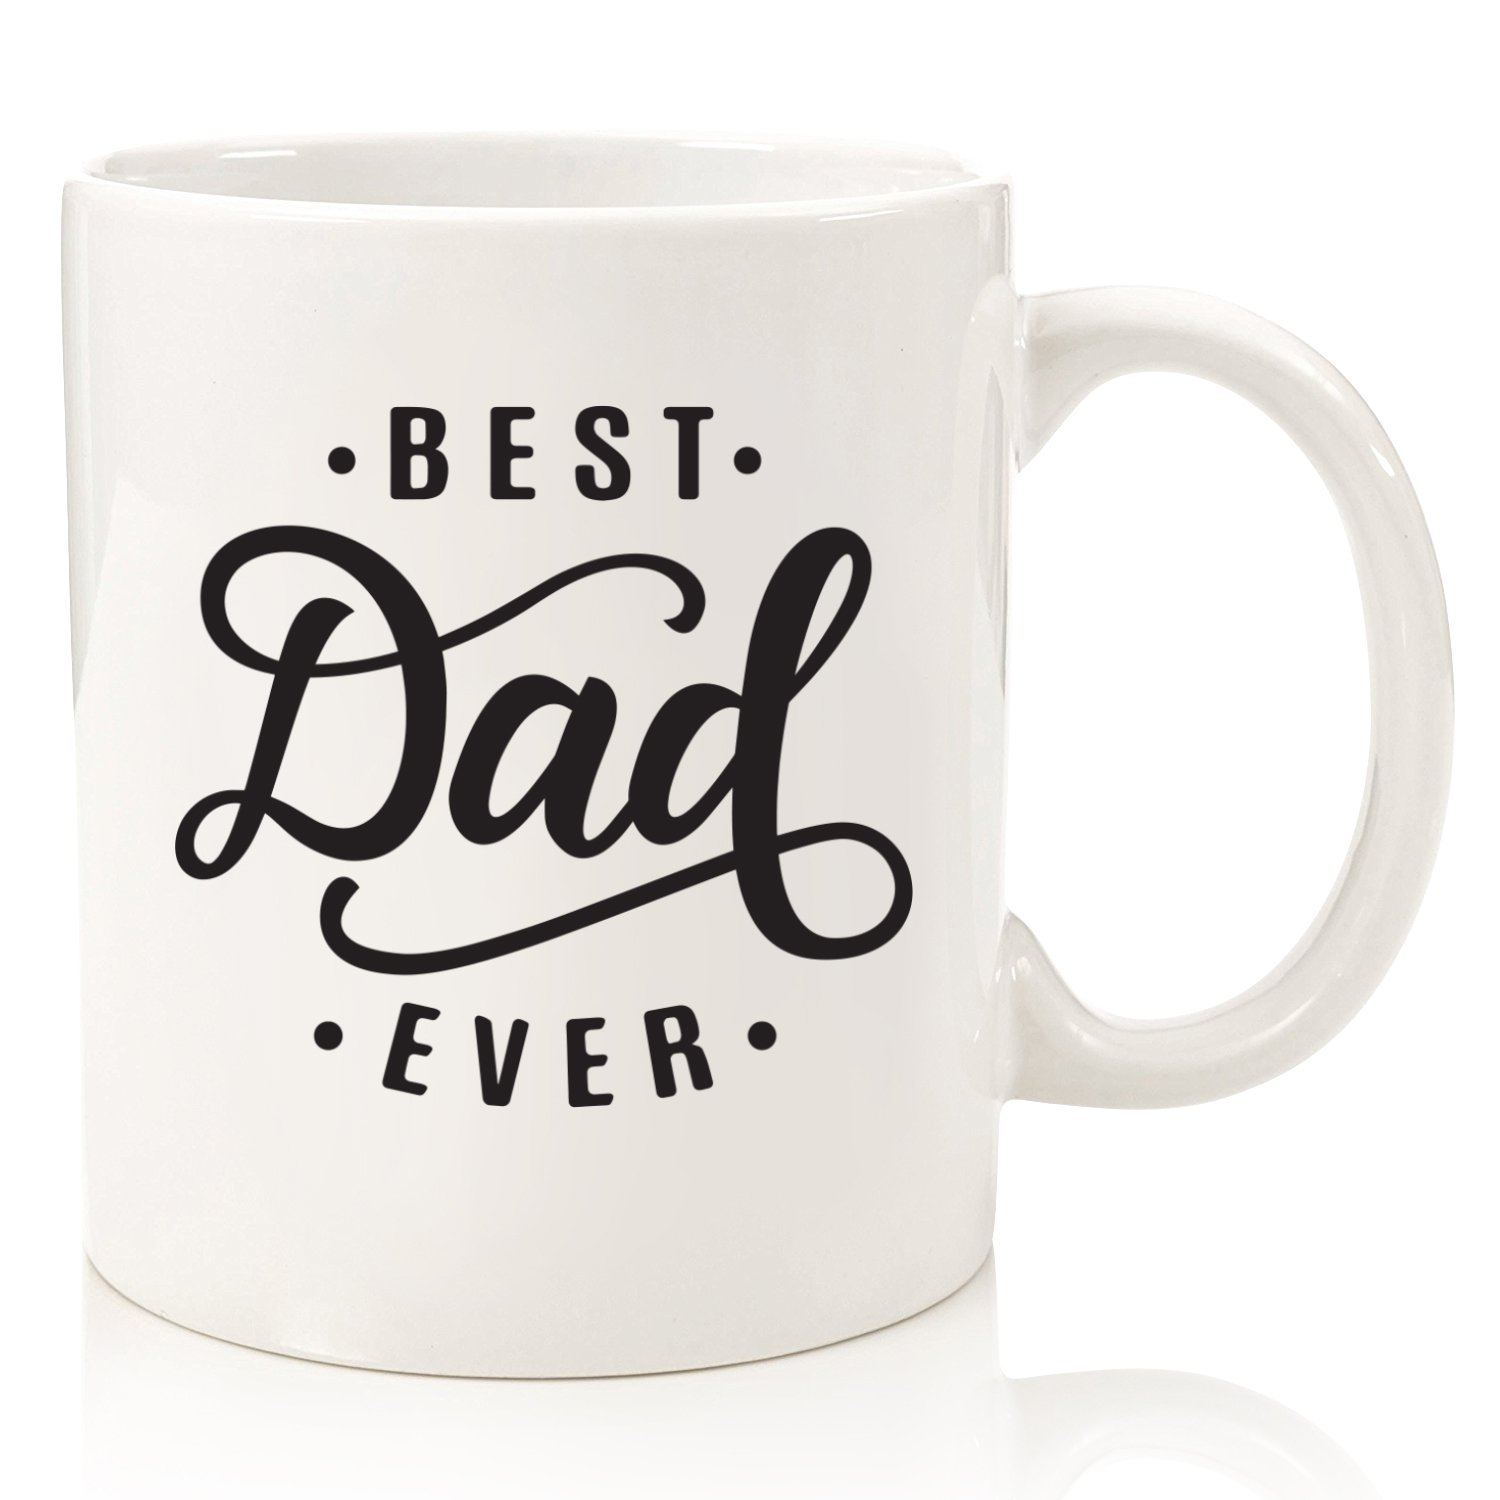 Best Dad Ever Gift Mug - Top Fathers Day Gifts For Dads, Husband, Men - Unique Gift Idea For Him From Daughter, Son, Wife - Cool Birthday Present For a New Father, Guys - Fun Novelty Coffee Cup - 11oz